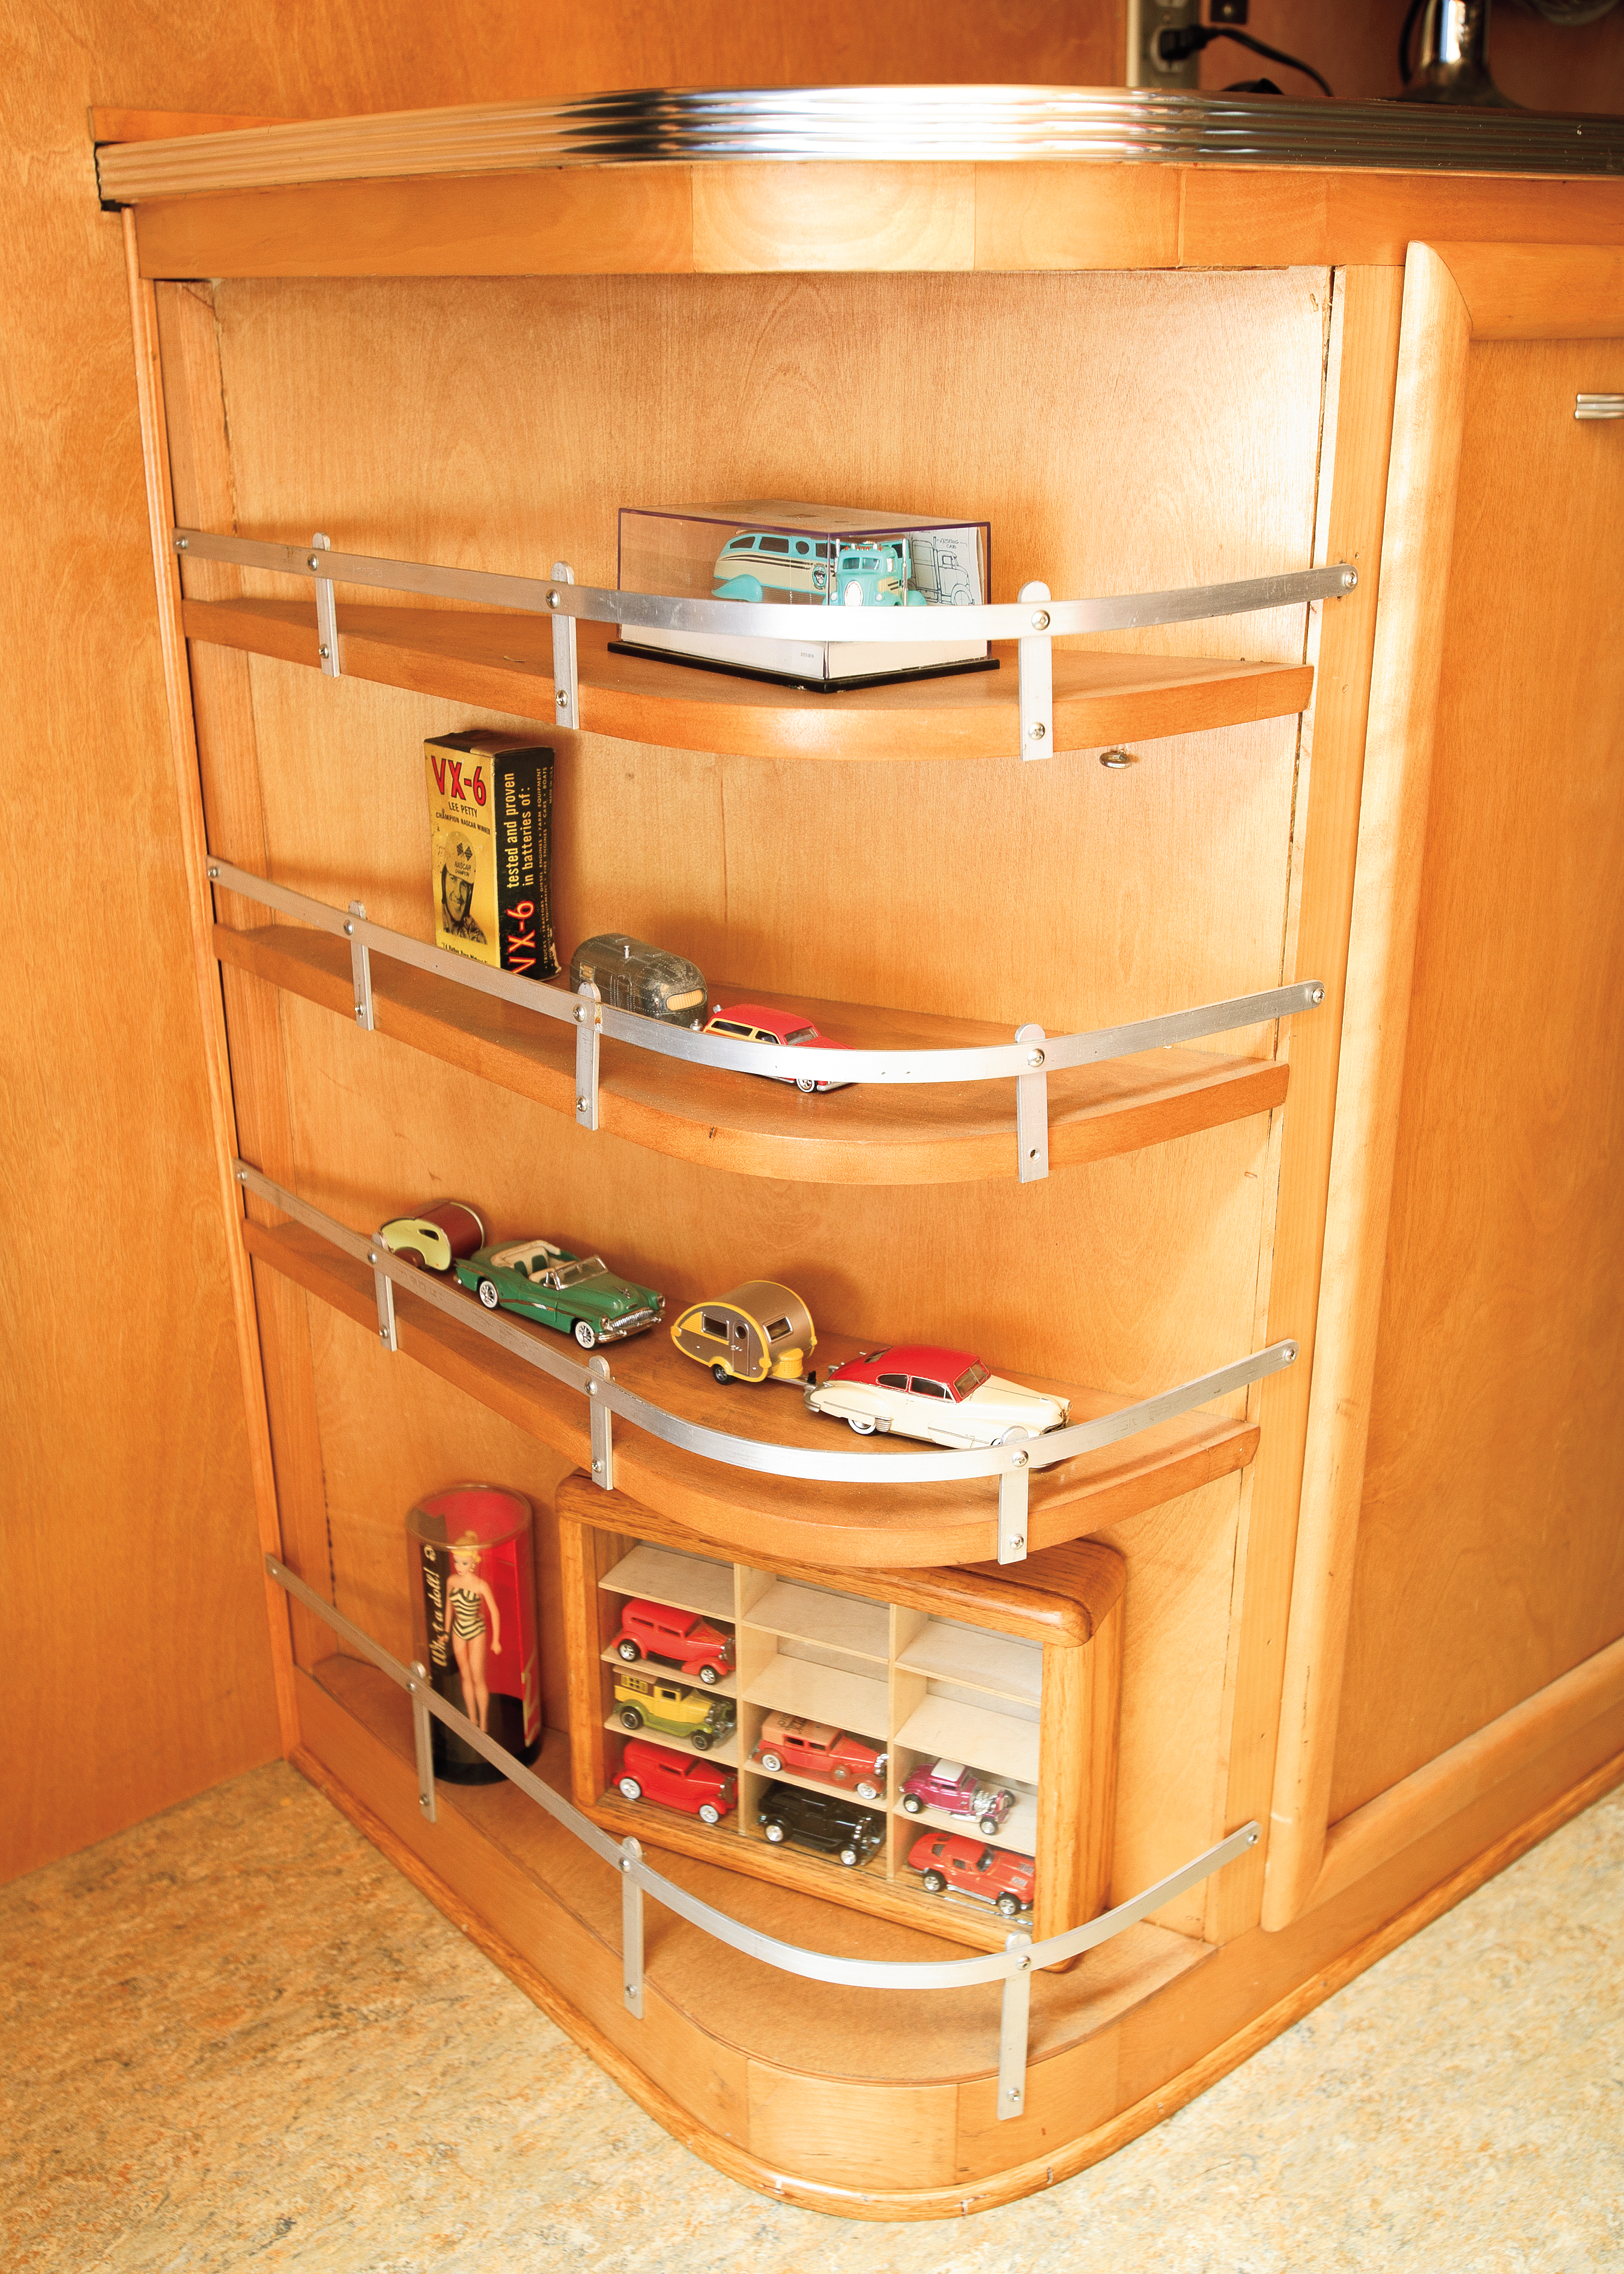 Larry really went all-out on creating the cabinets for his trailer. Small scale models of other car and trailer combos fill the shelves, along with a vintage box of VX-6 Lee Petty battery additive.